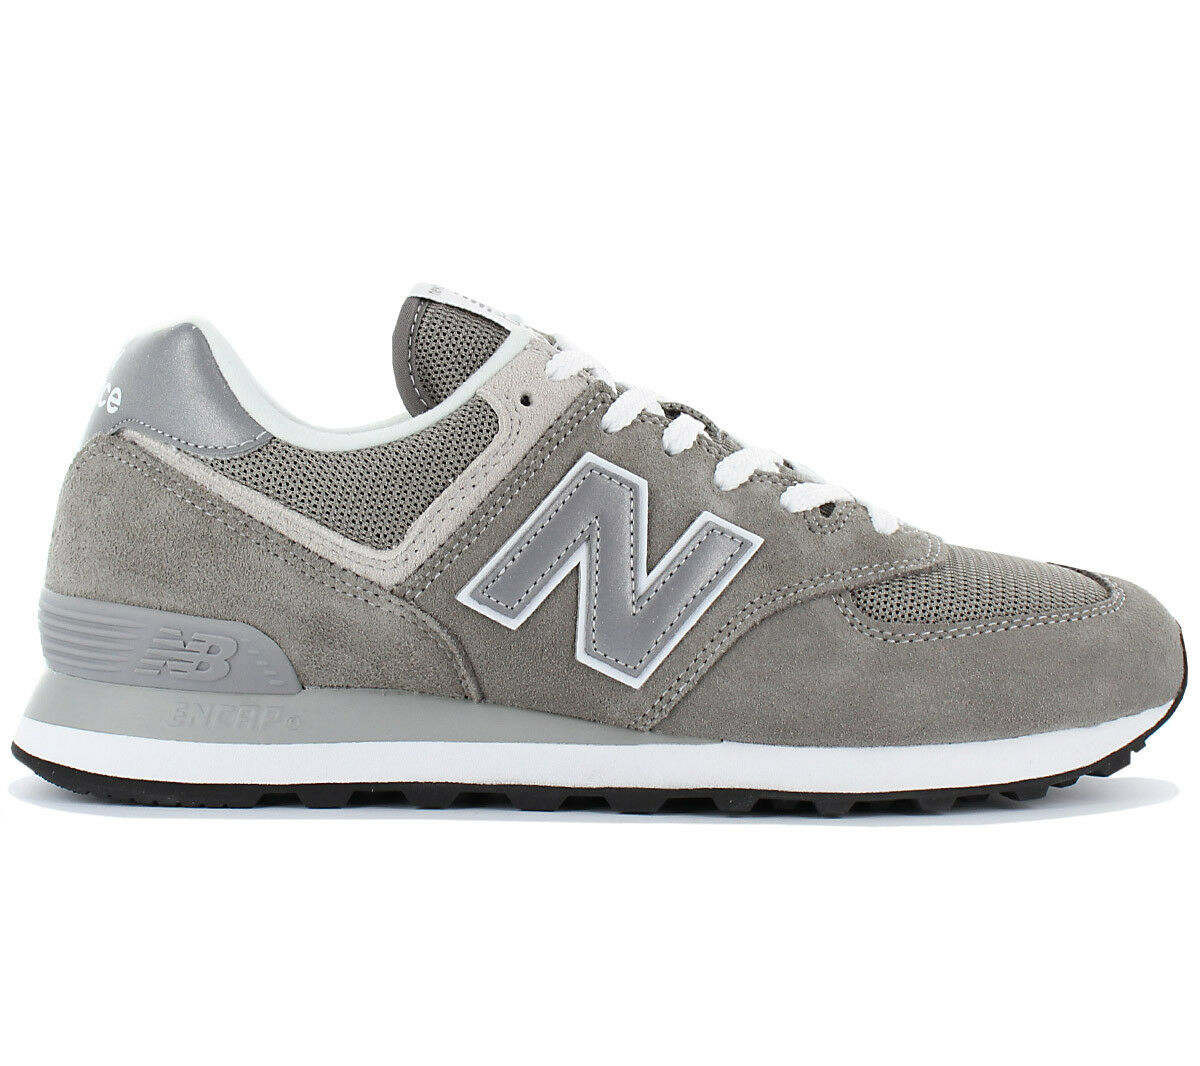 New Balance Classics 19.4oz574EGG Trainers shoes Zapatillas greyes Leisure New